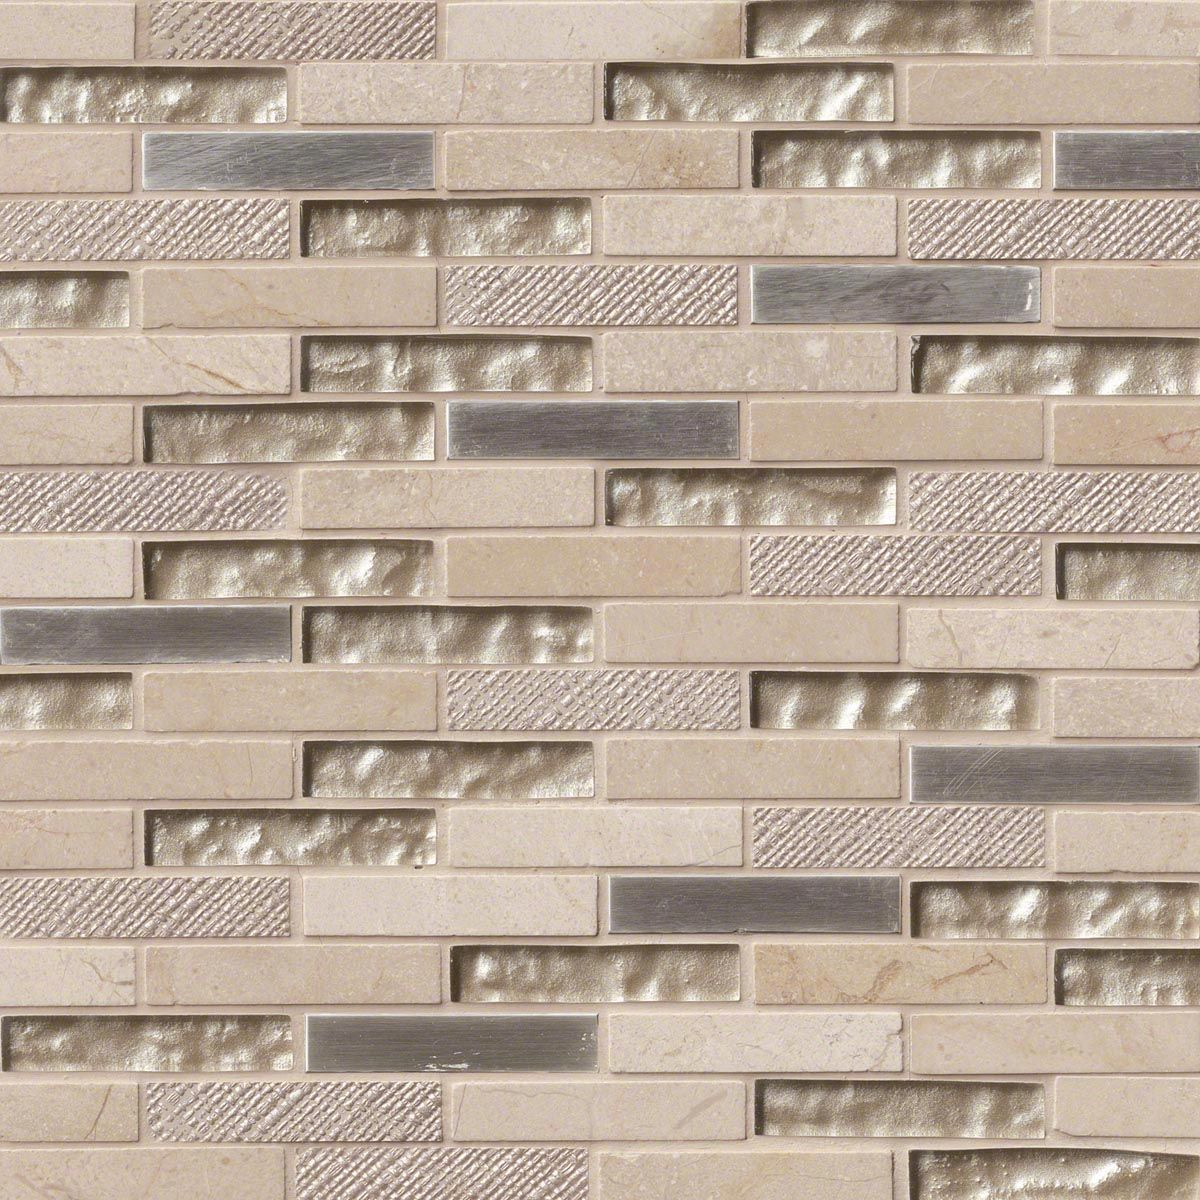 Glass stone mosaic kitchen backsplash photo marazzi pictures to pin on - Vienna Blend Brick 0 625x3x8 Mm Glass And Stone Mosaic Backsplash Tile